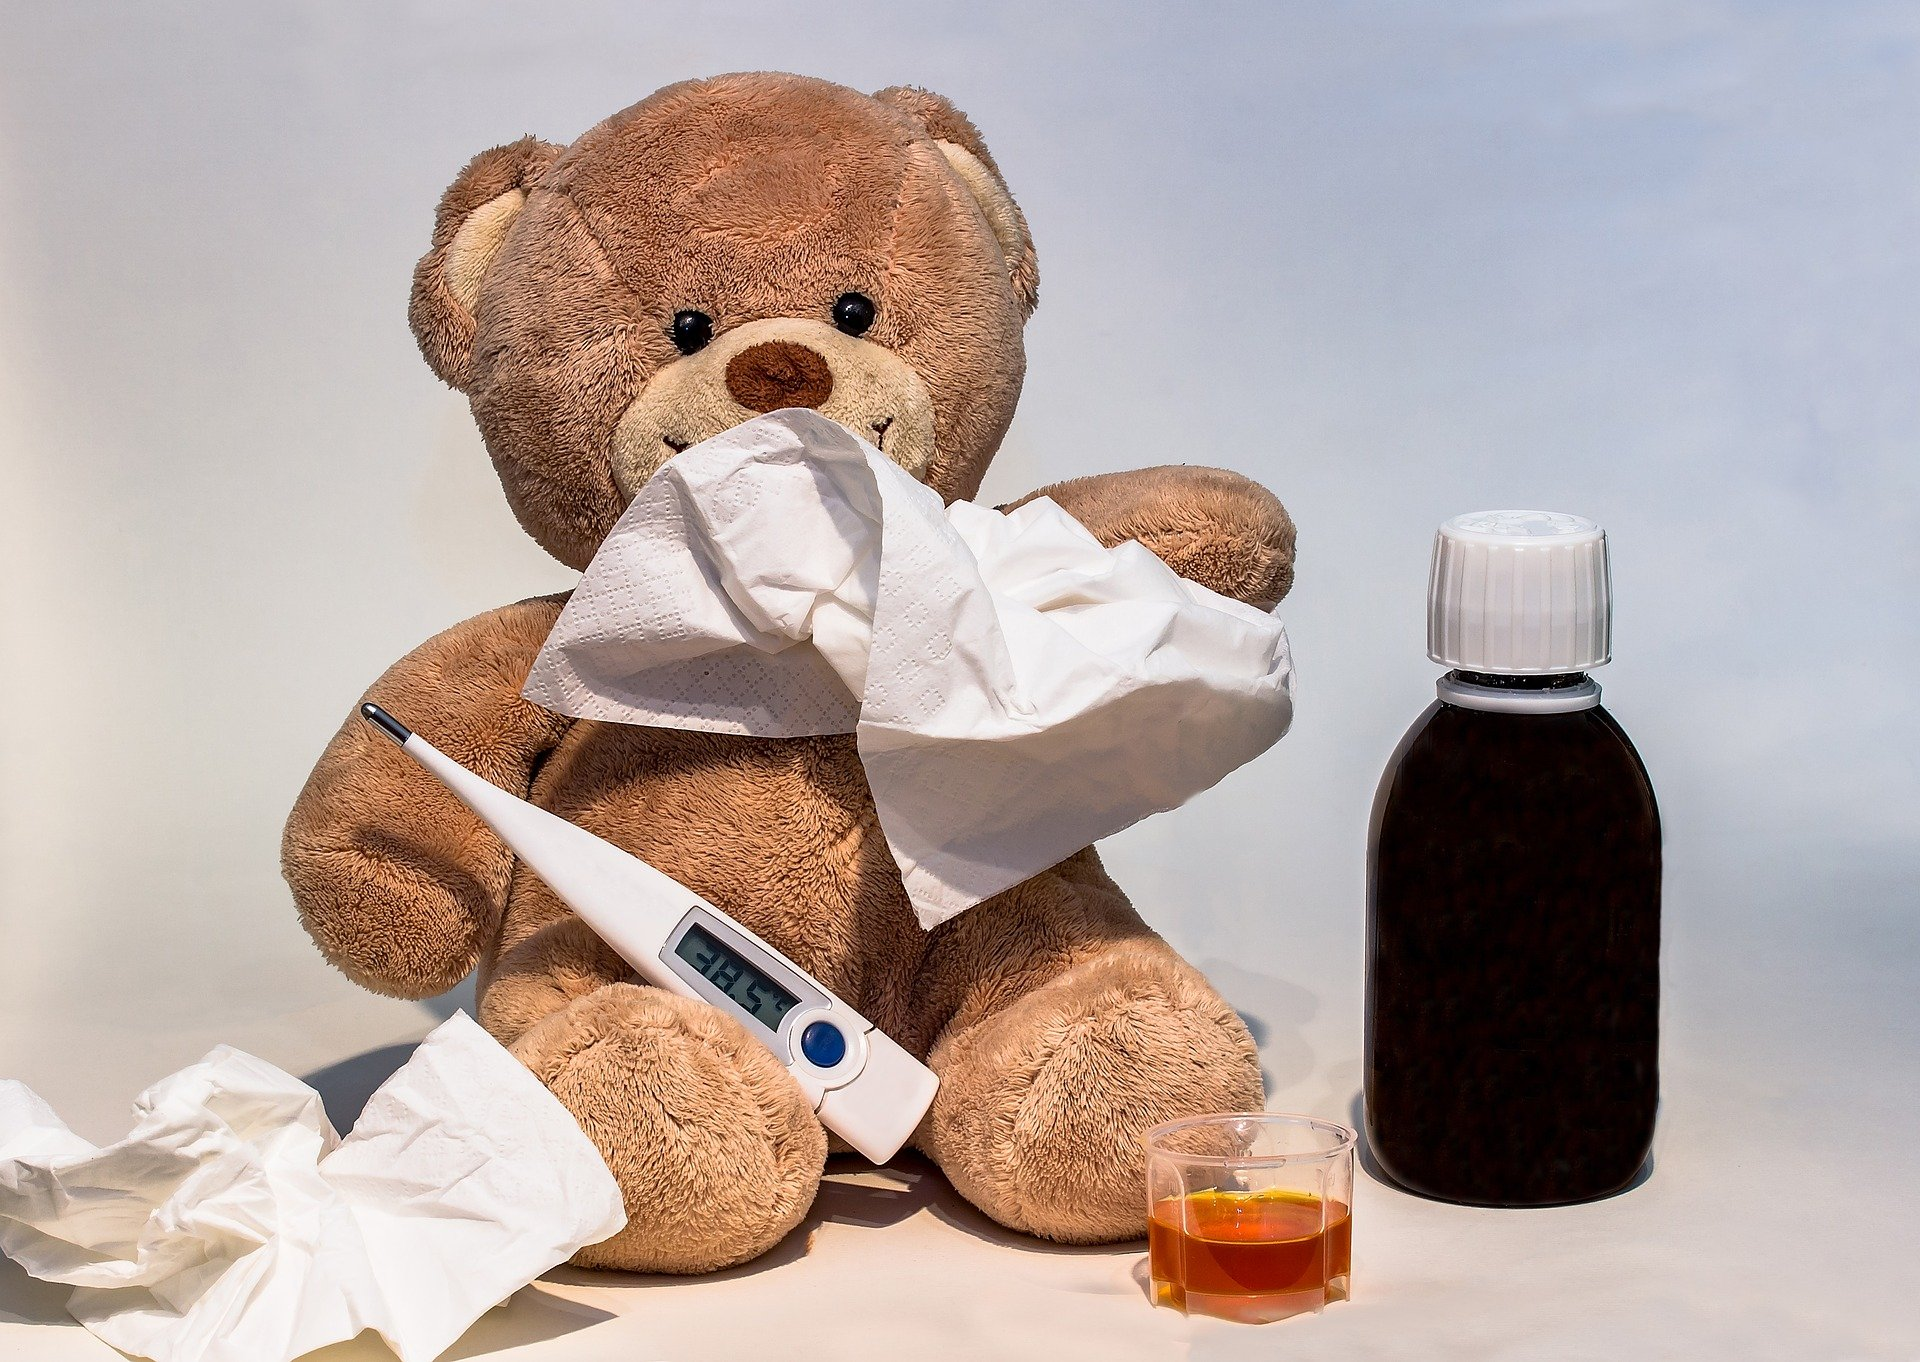 a teddy bear with flu medicine